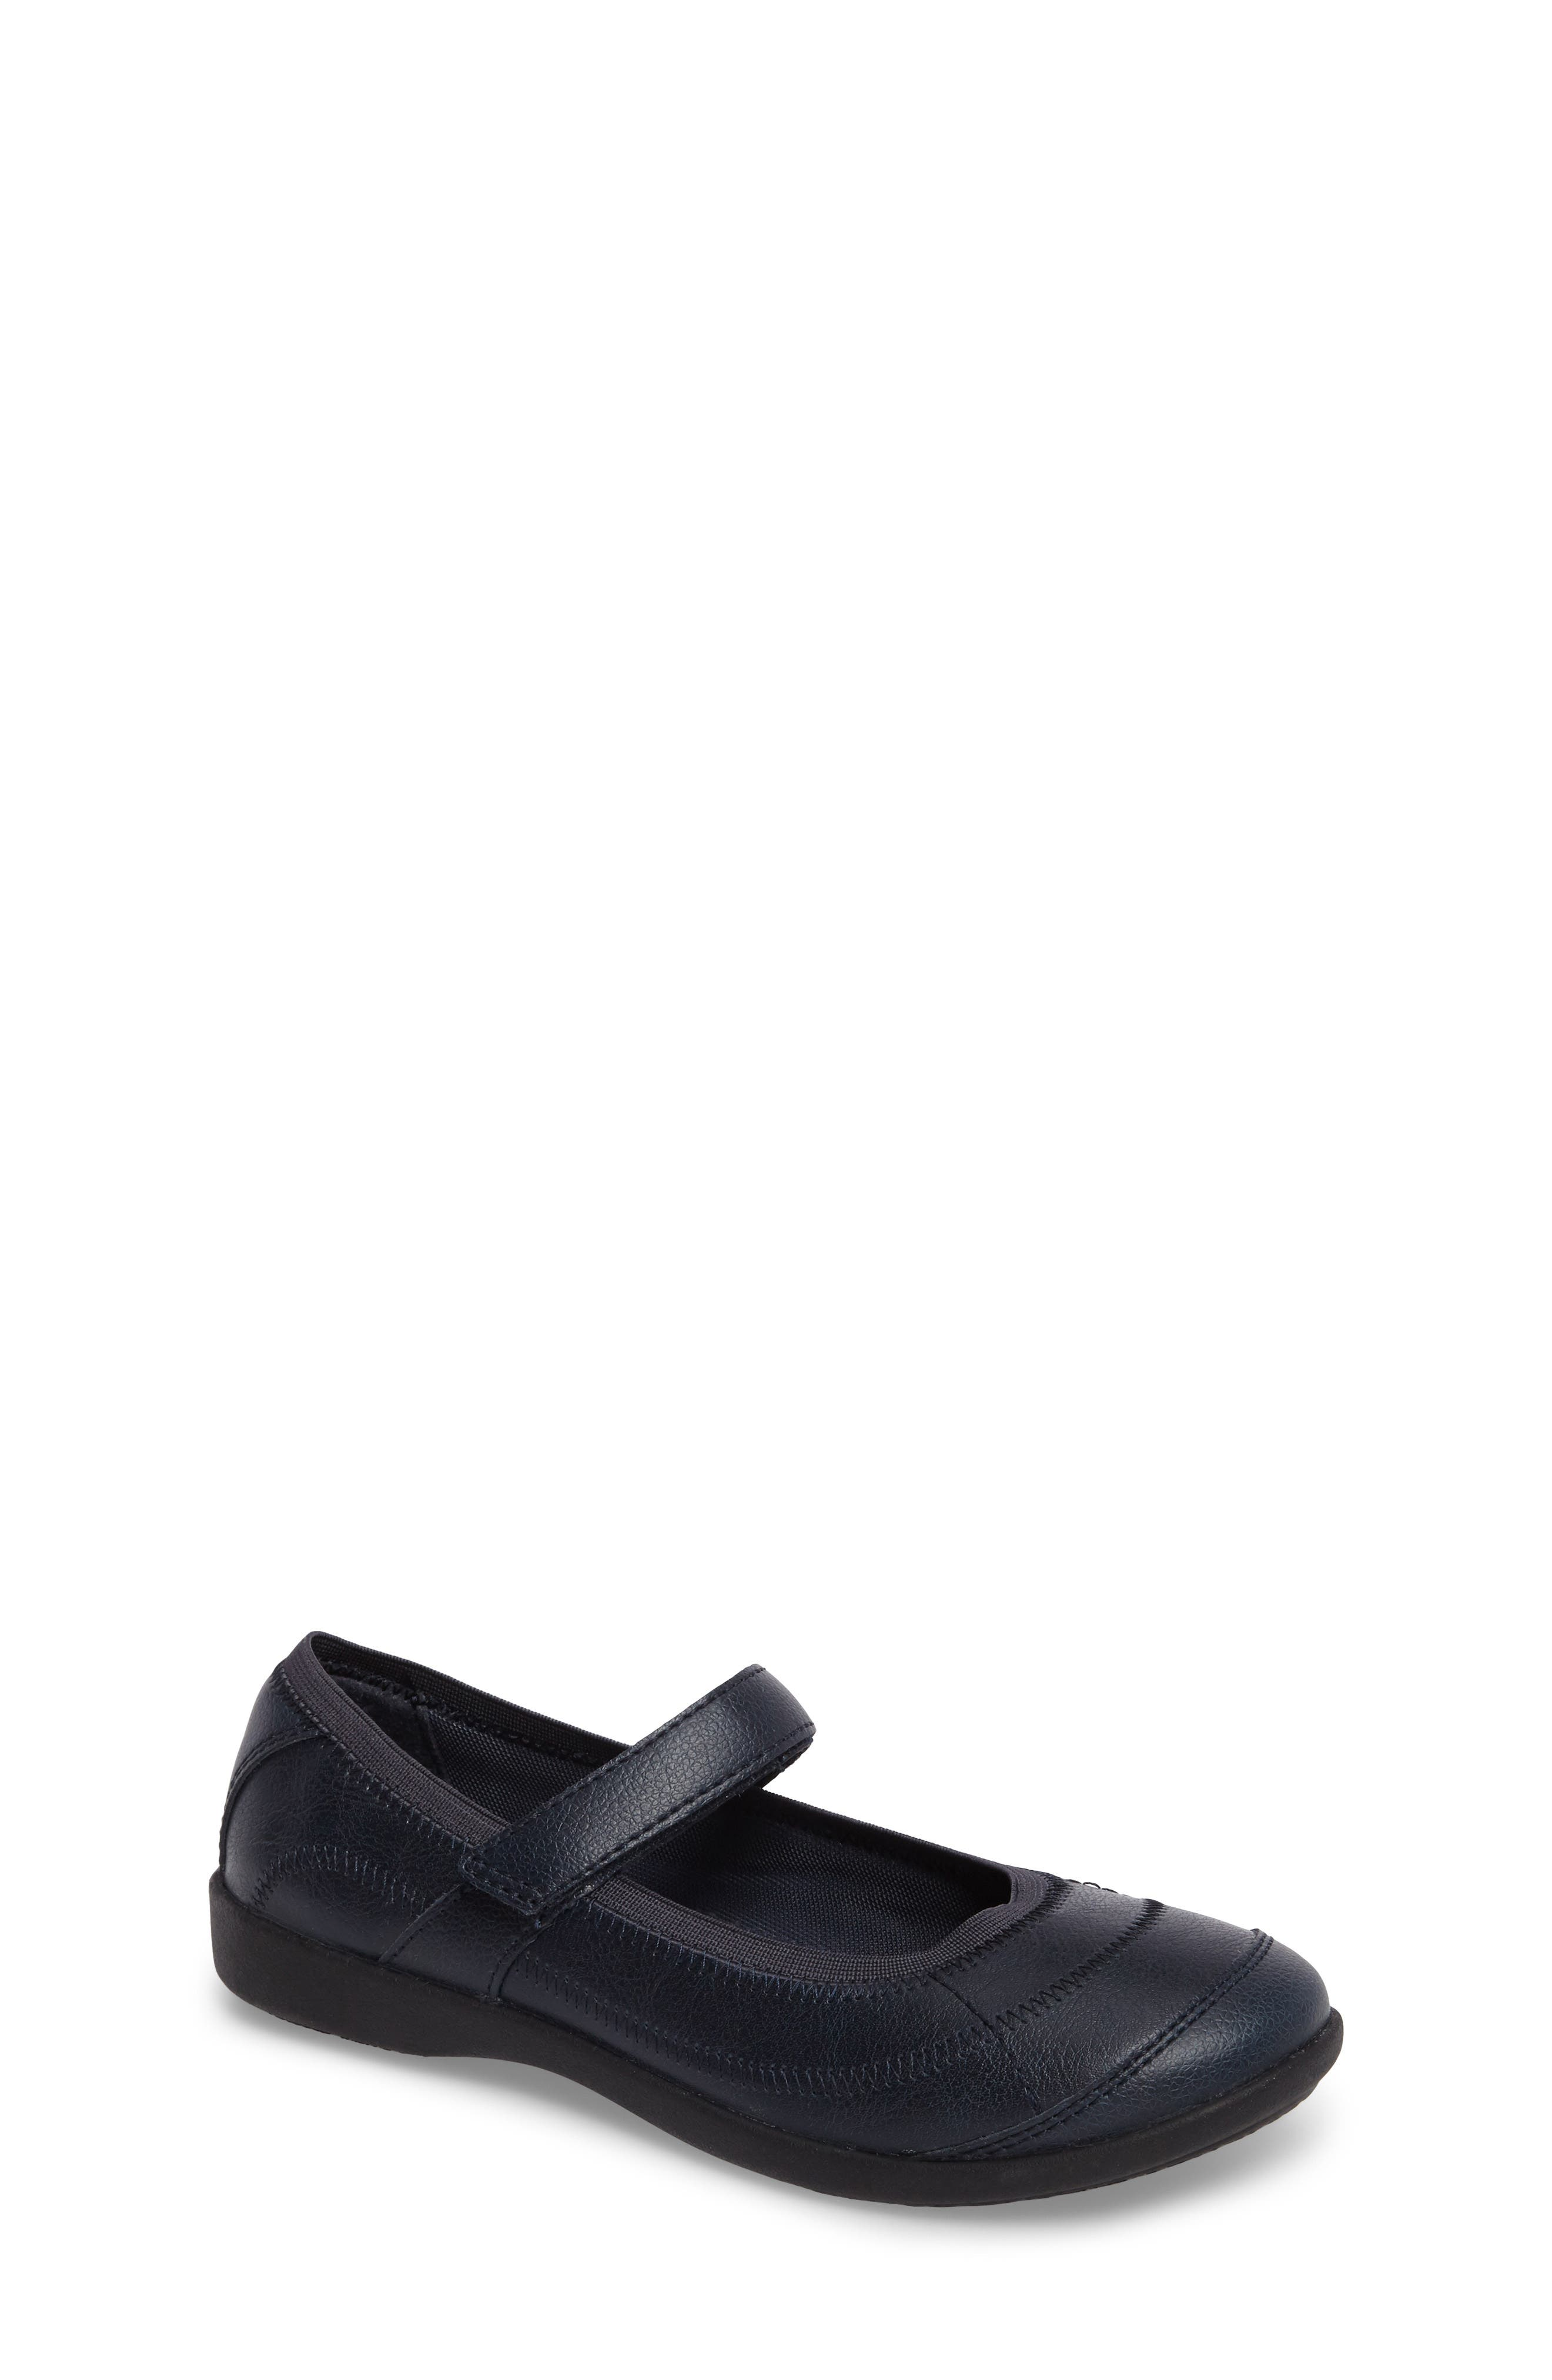 Reese Mary Jane Flat,                         Main,                         color, NAVY LEATHER